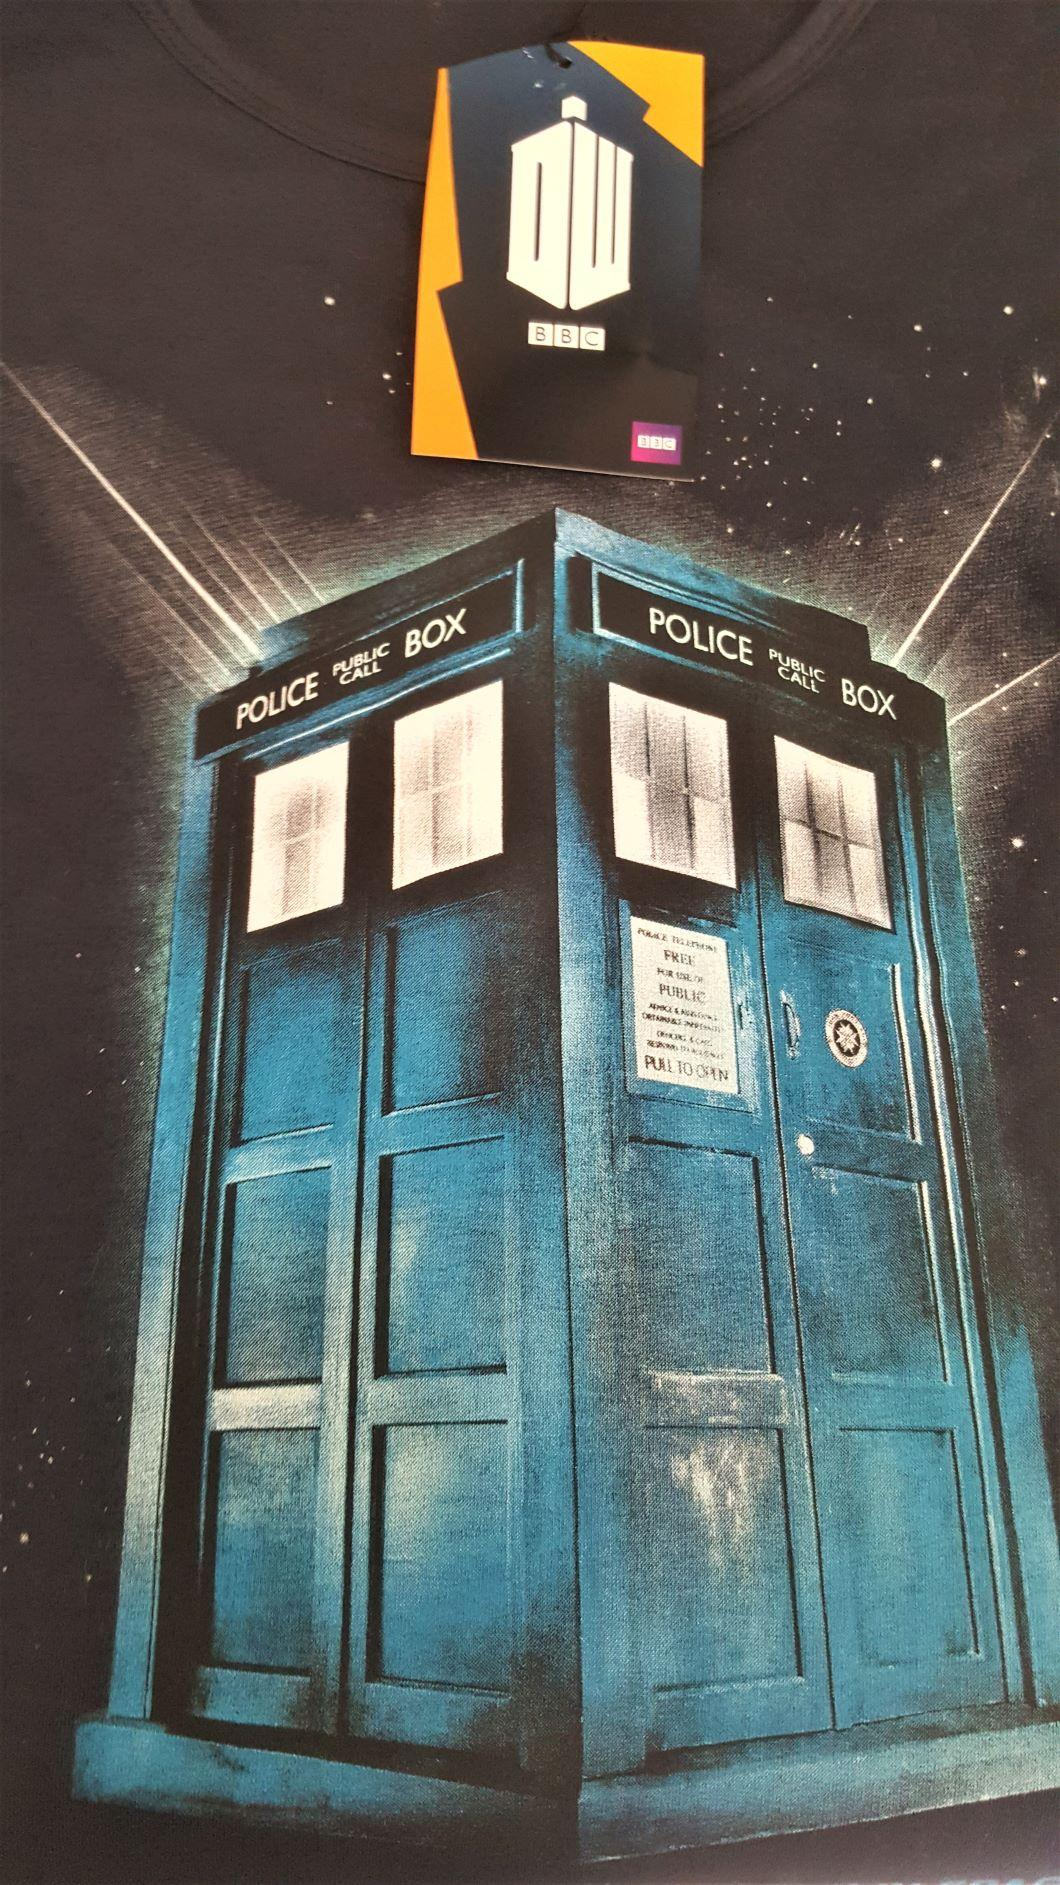 T shirt dr who femme police box